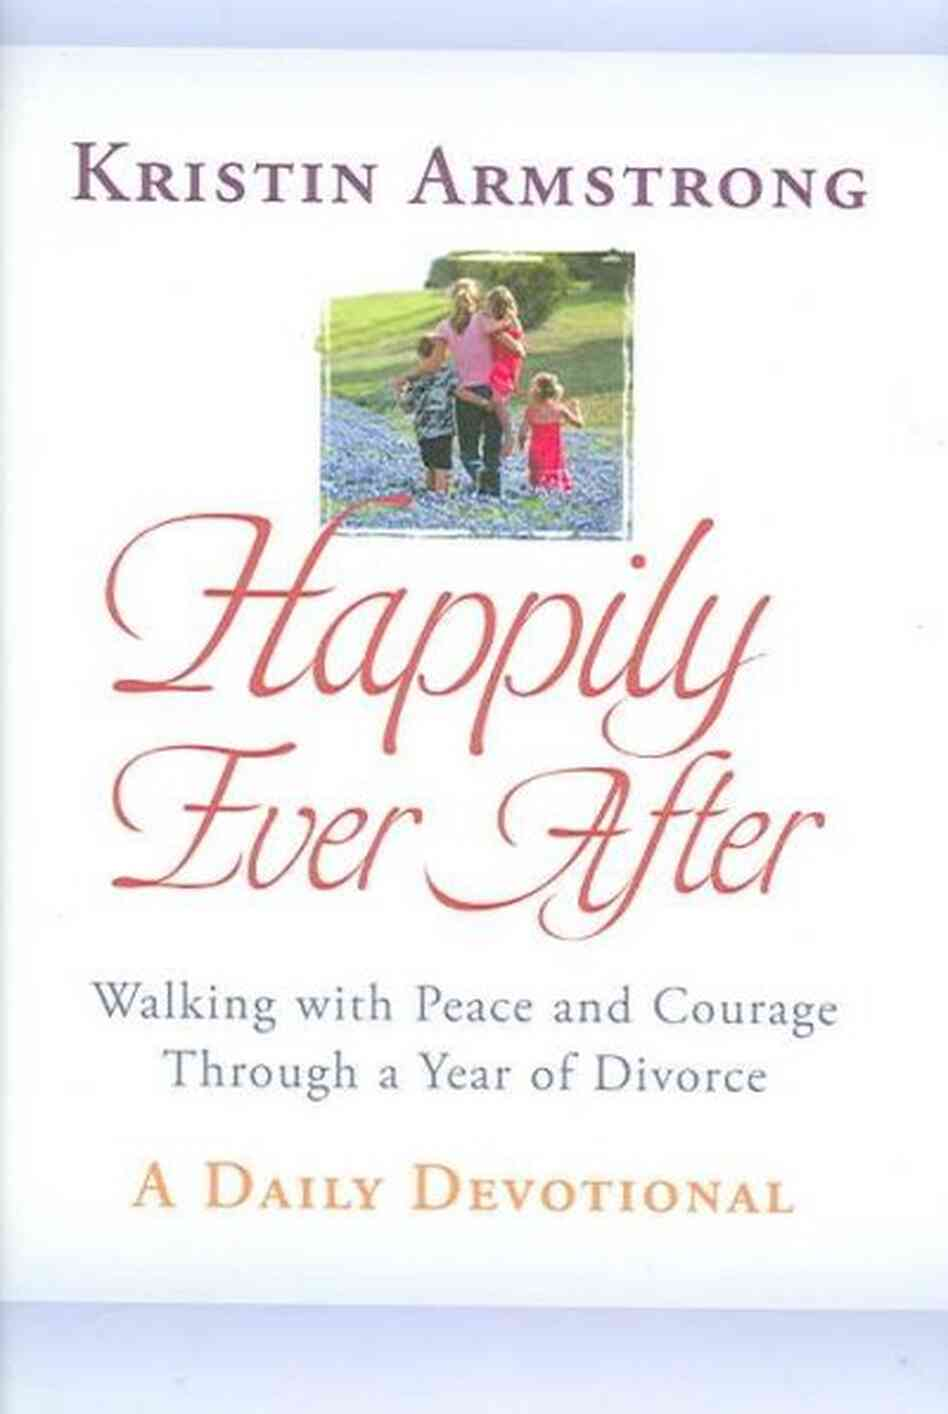 [PDF] Happily Ever After Book (The Selection 4, 5, 5, 1, 5) Free Download (416 pages)